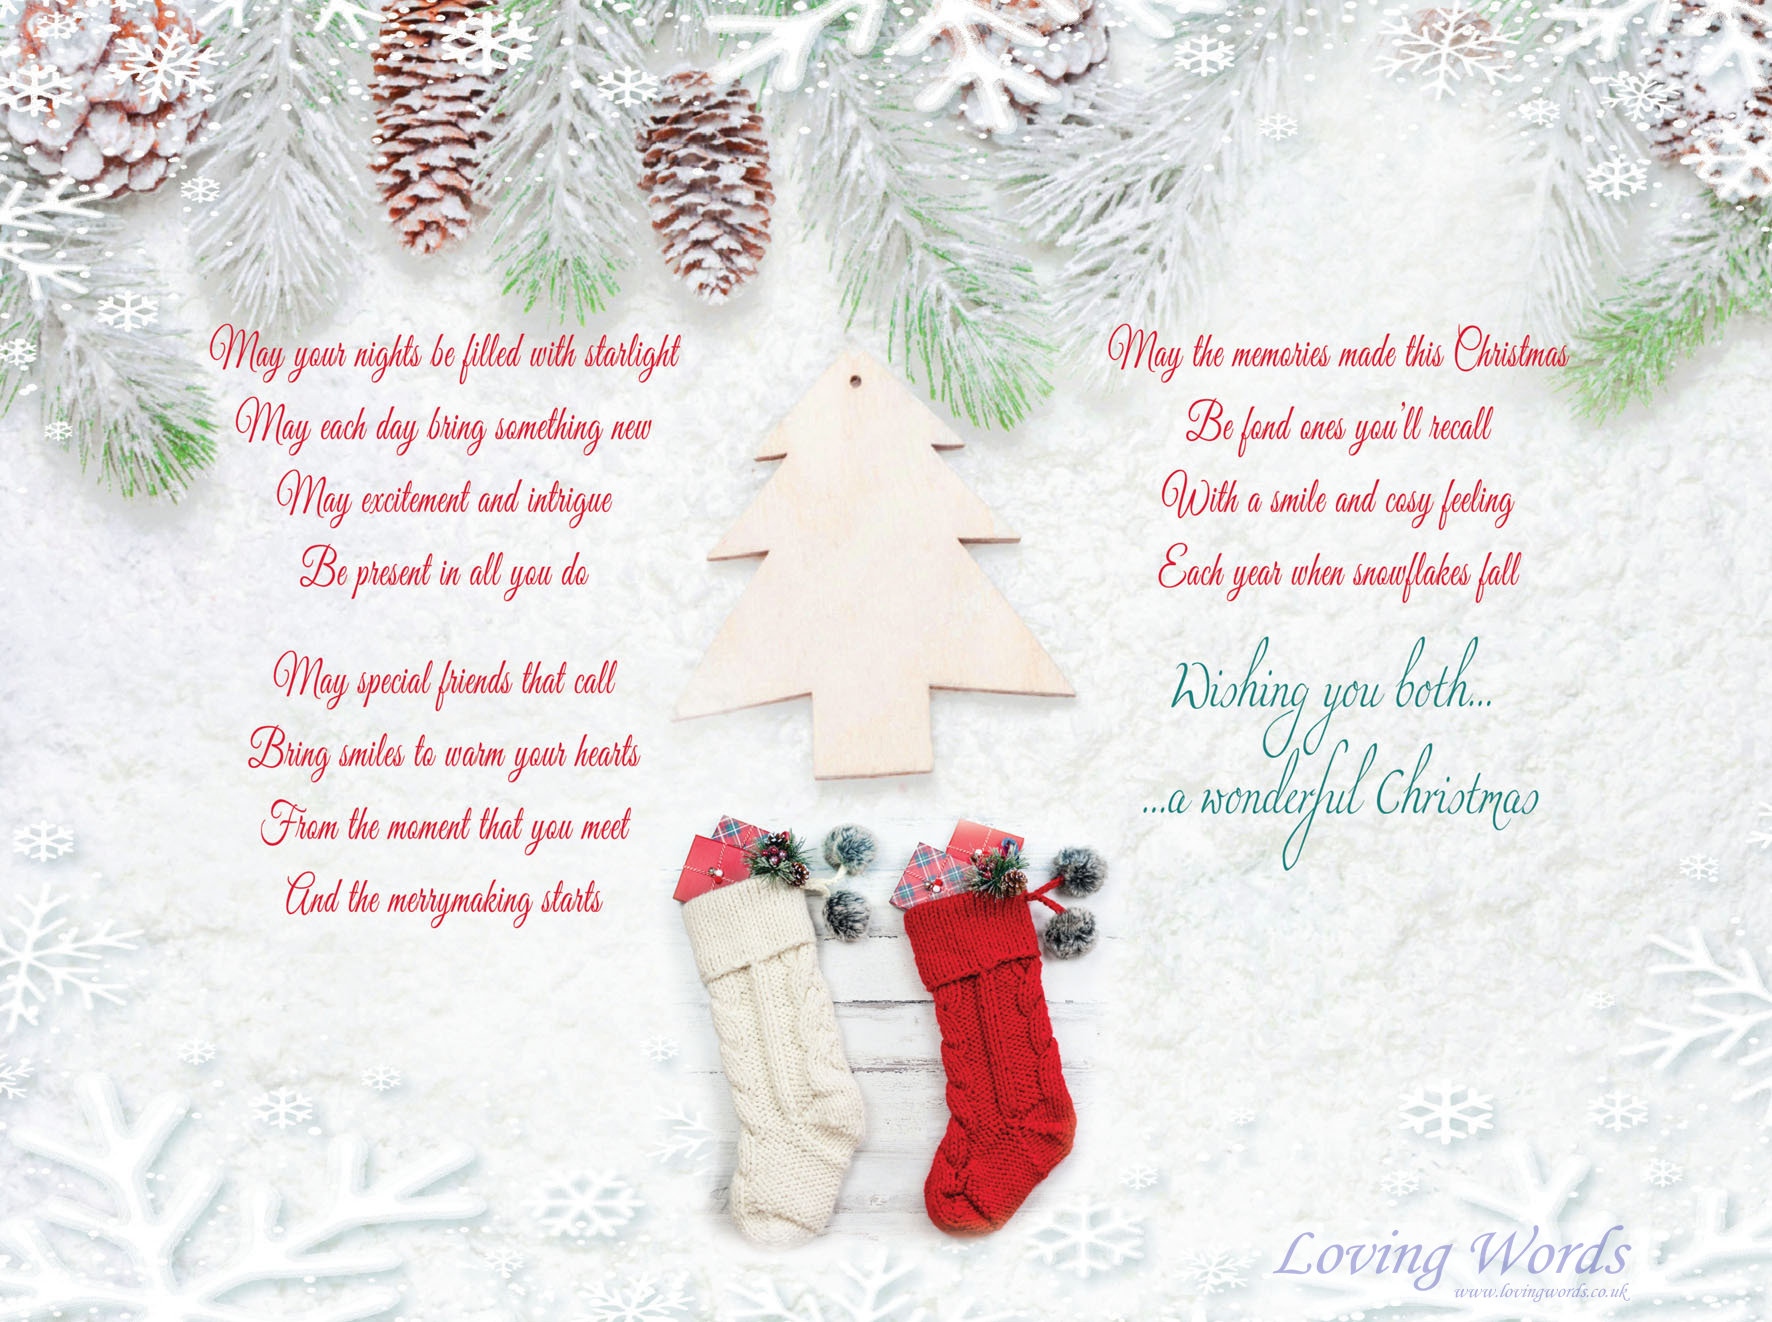 Granddaughter and partner at christmas greeting cards by loving words personalised greeting cards personalised greeting cards kristyandbryce Gallery